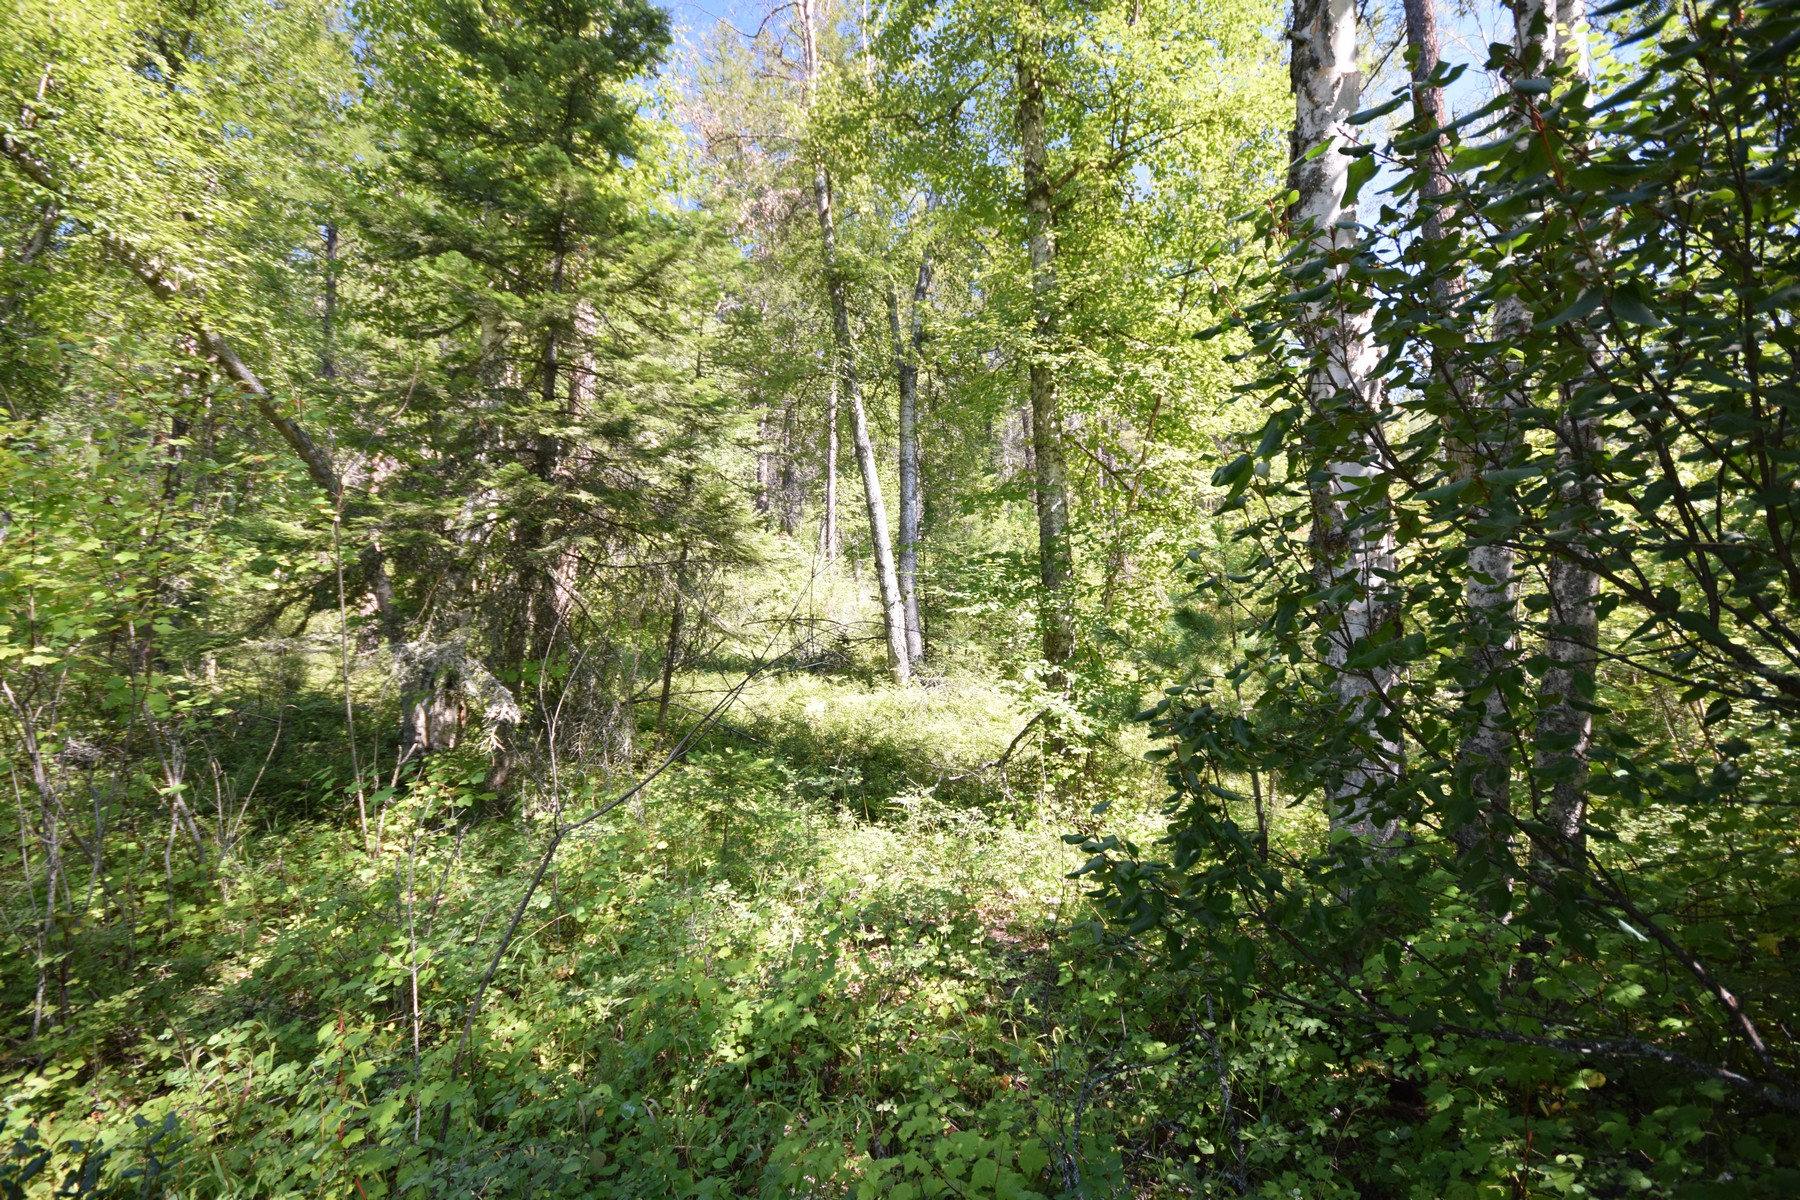 Land for Sale at 682 Latigo Ln , Bigfork, MT 59911 682 Latigo Ln Bigfork, Montana 59911 United States